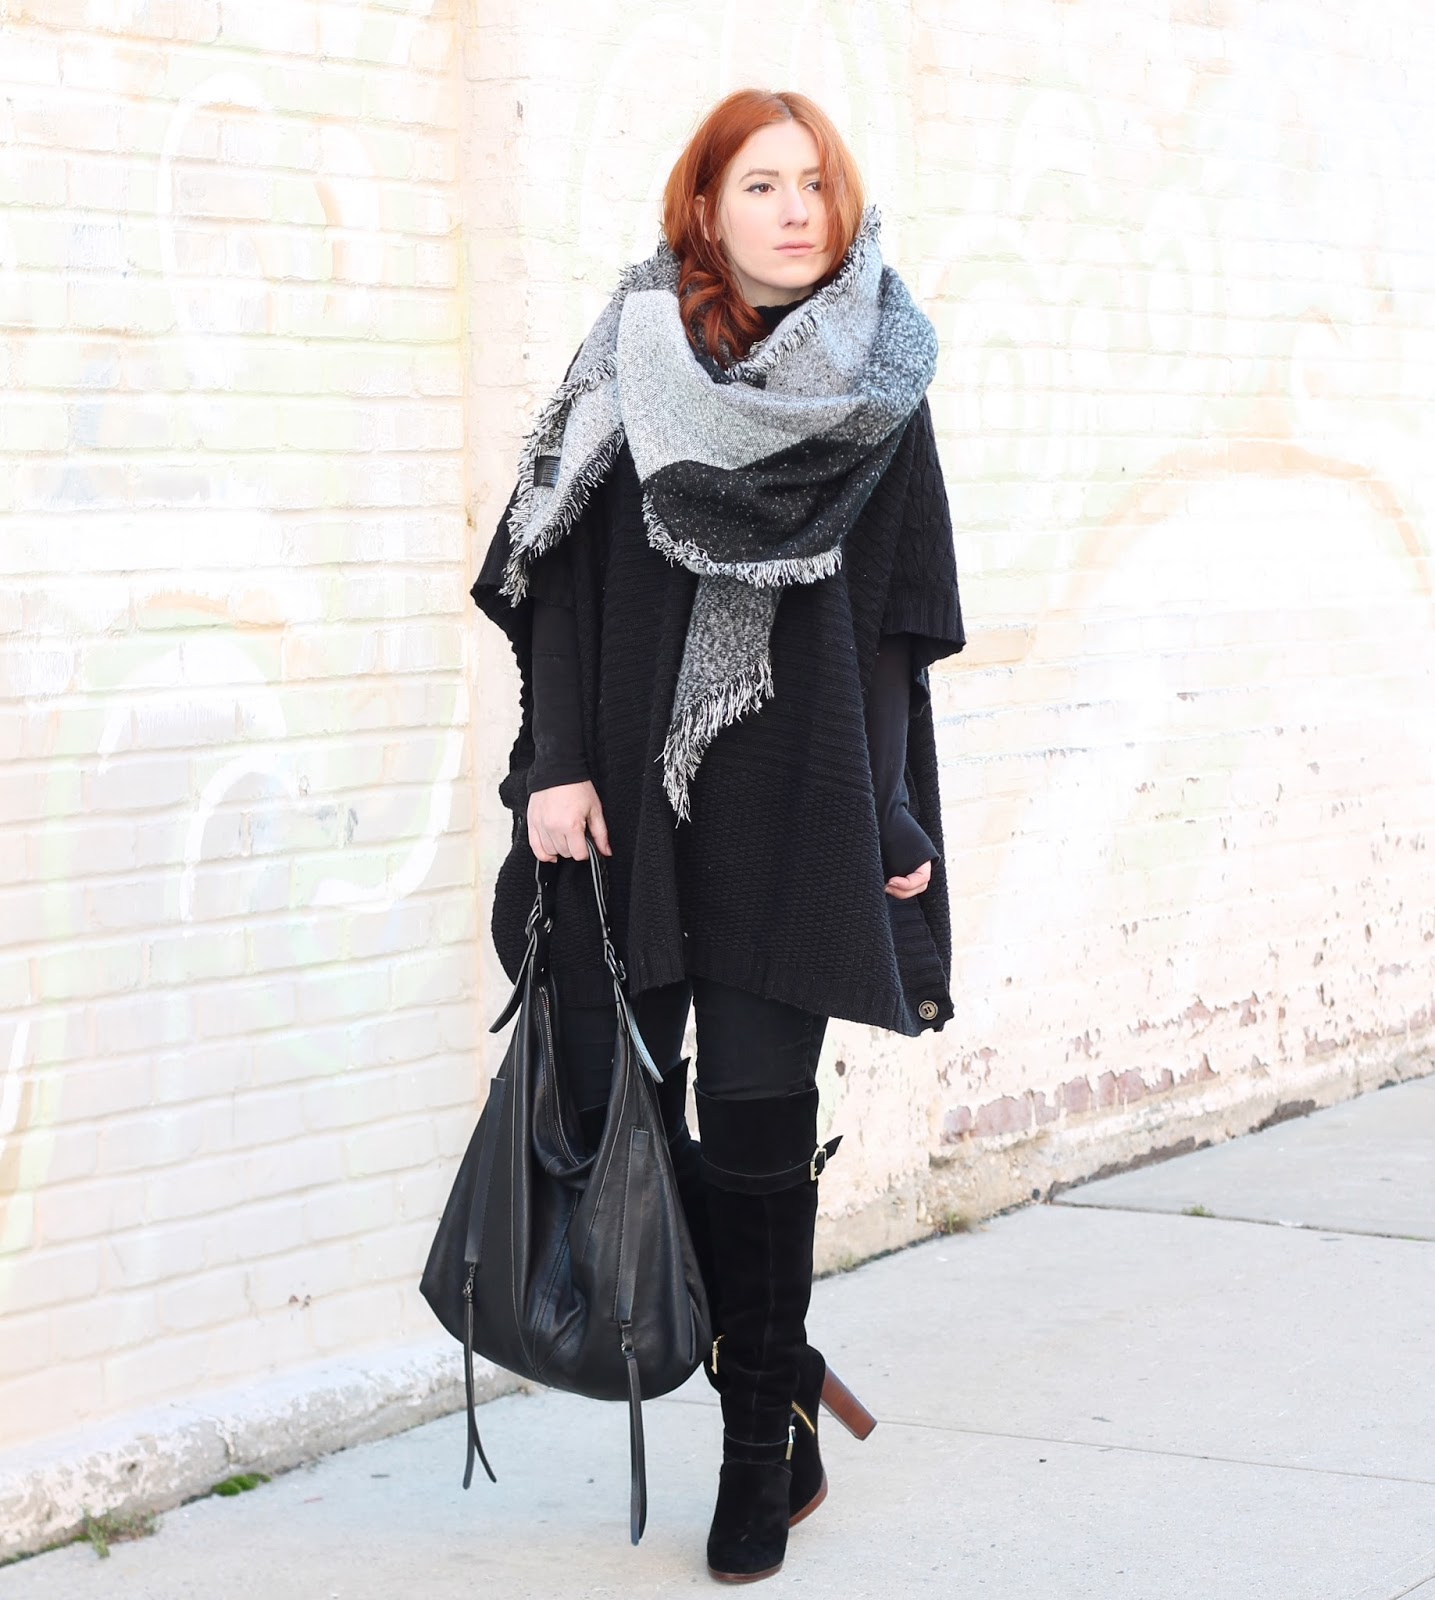 blanket scarf, black on black, winter layering, fashion style, winter, blanket scarf style, how to wear a blanket scarf, kooba bags, how to wear a poncho, poncho style